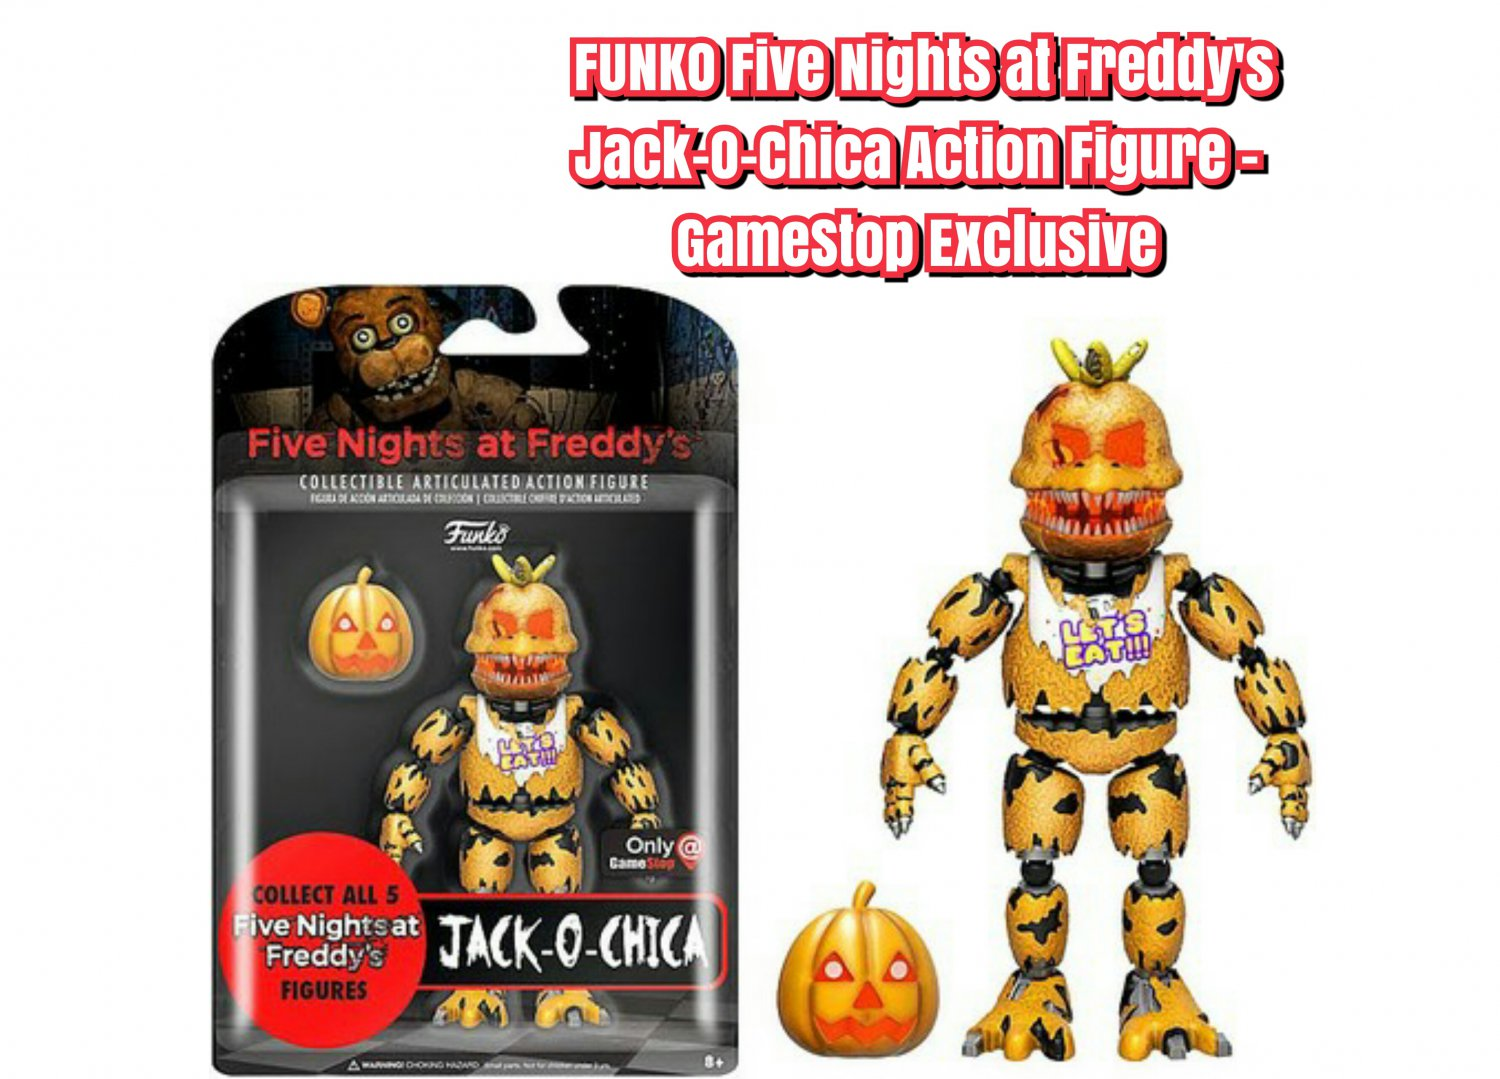 """FUNKO Five Nights at Freddy's 5"""" Jack-O-Chica Series 2 Action Figure - GameStop Exclusive"""